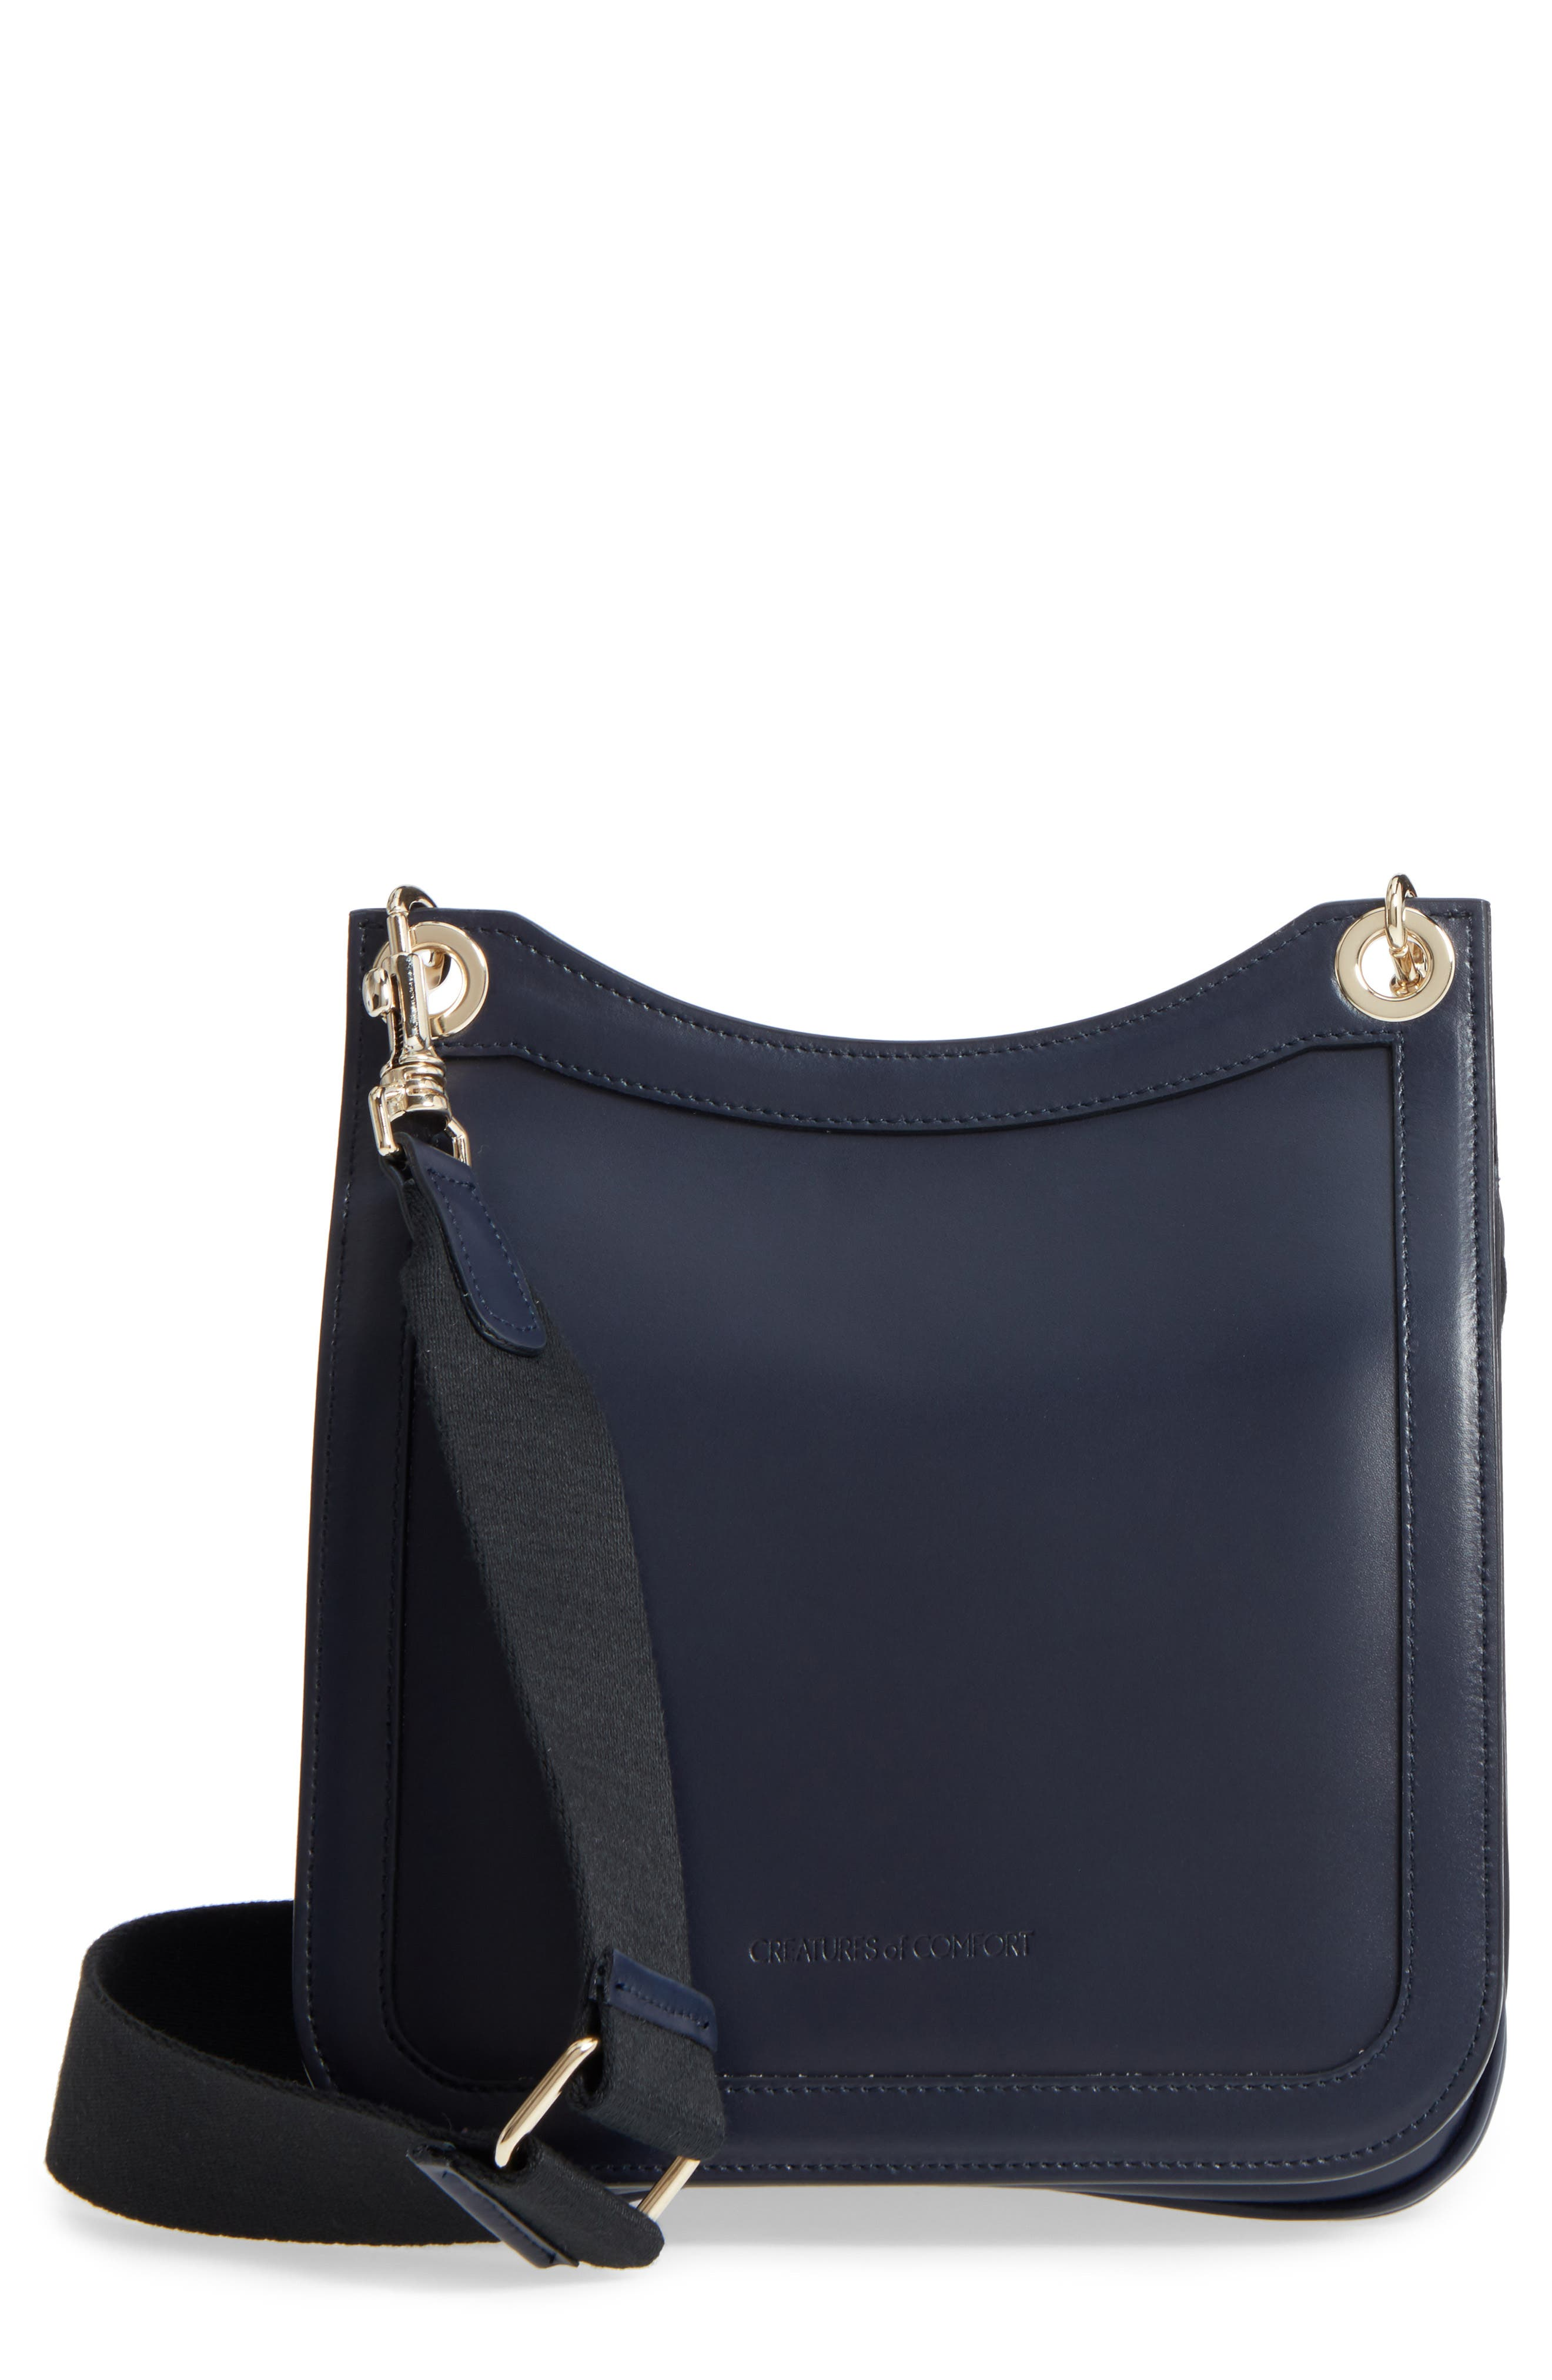 Alternate Image 1 Selected - Creatures of Comfort Leather Equestrian Crossbody Bag